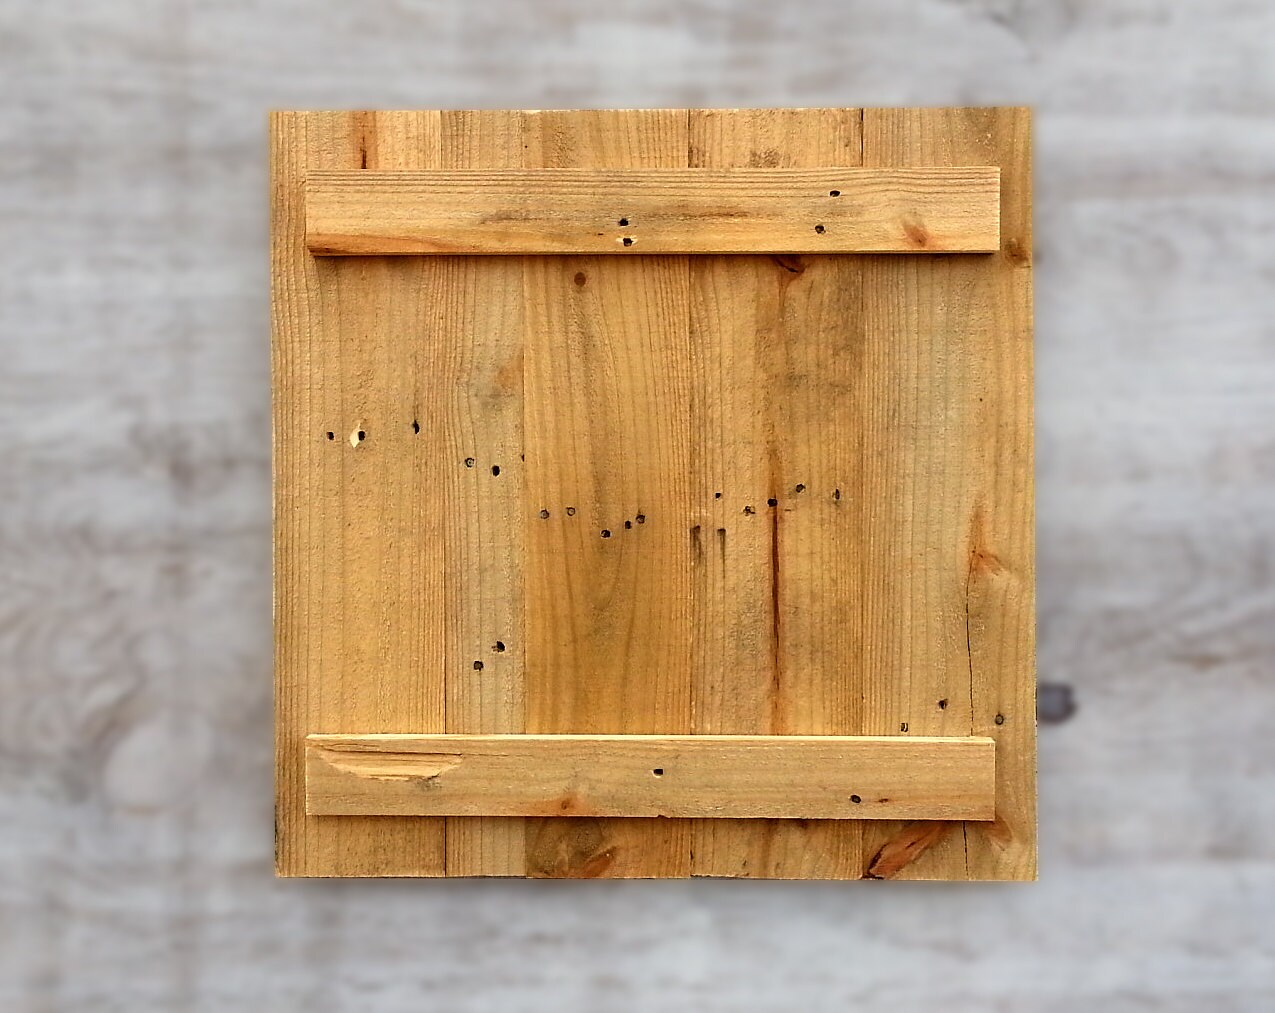 Blank Distressed Pallet Wood Panel Canvas From Rustic Recycled